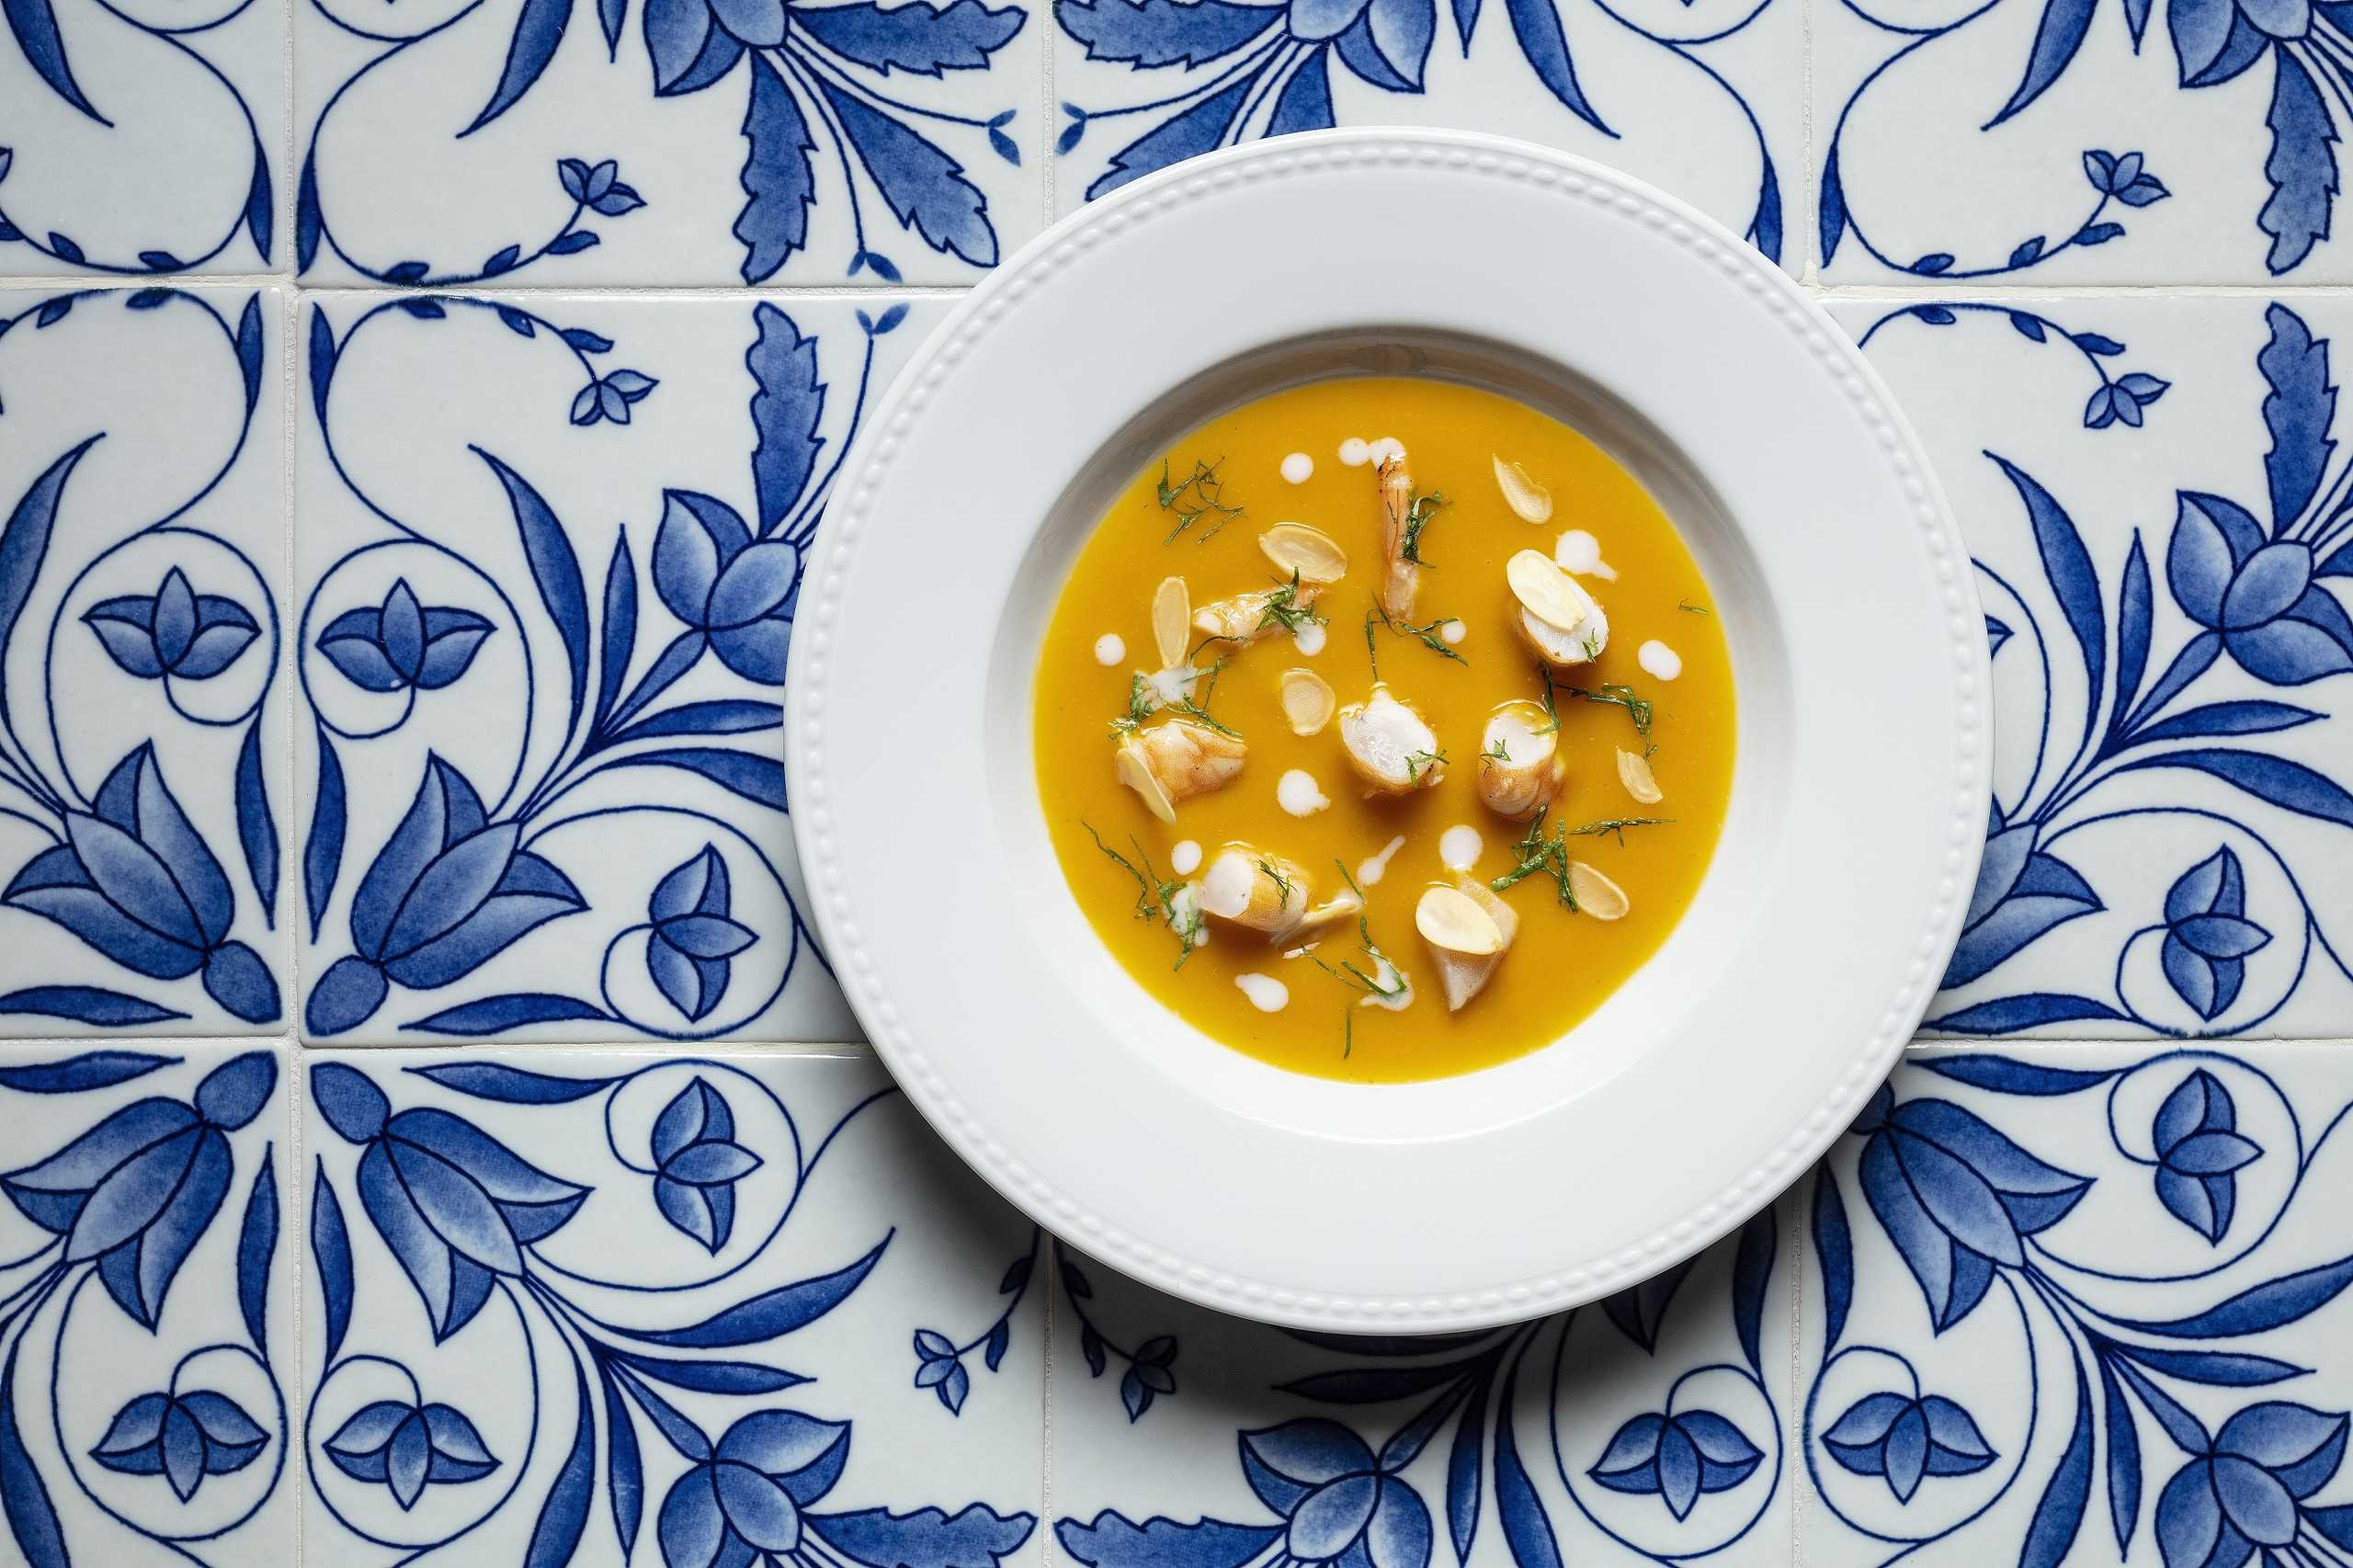 Sands Cotai Central Chiado portuguese restaurant Roasted pumpkin soup with coconut cream, prawns and almonds